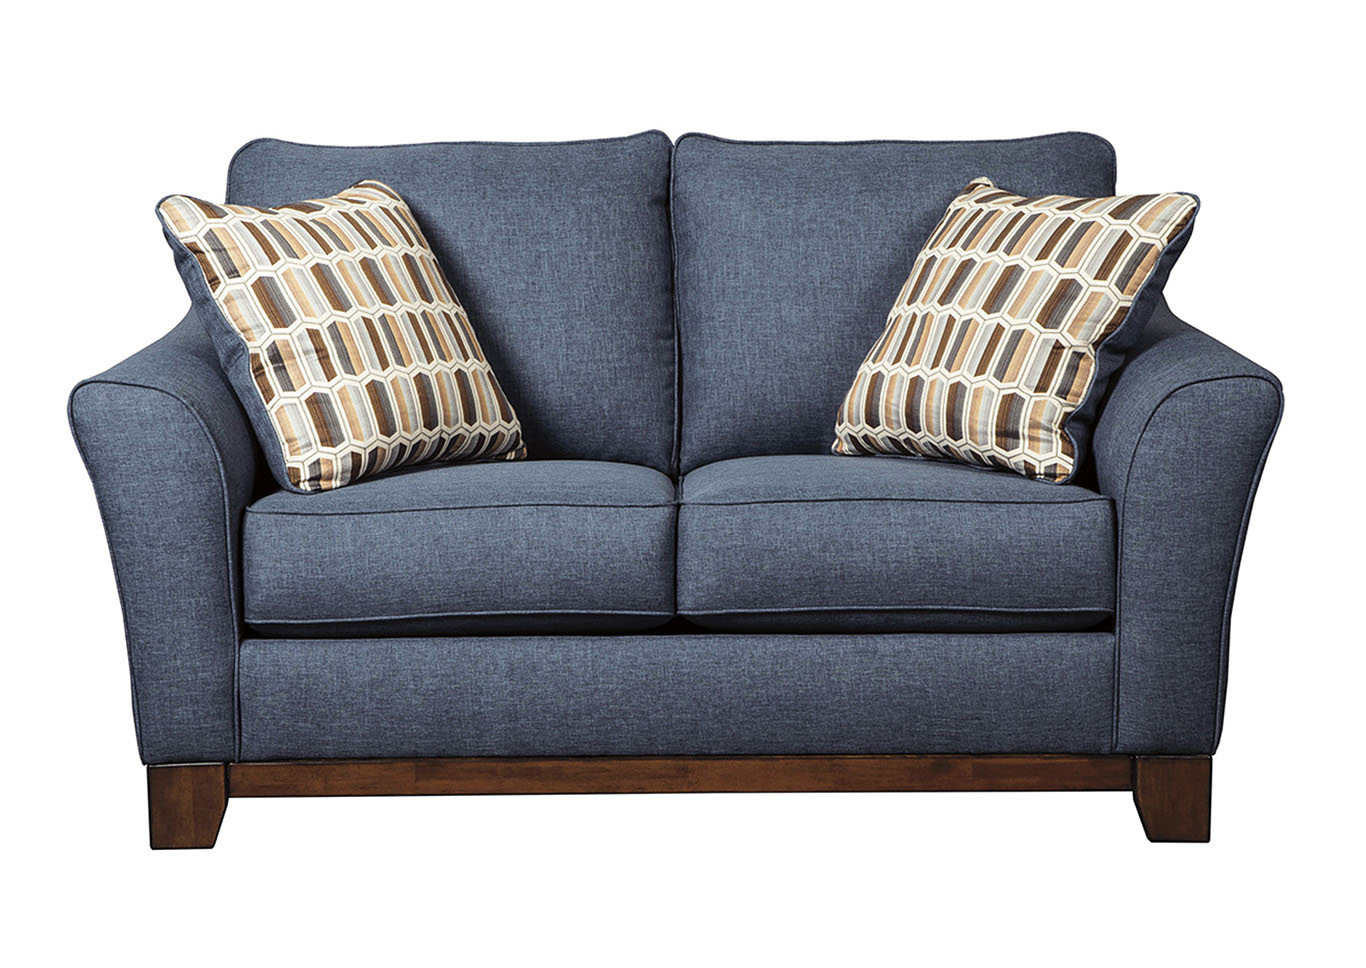 Furniture Liquidators Home Center Janley Denim Loveseat: denim couch and loveseat